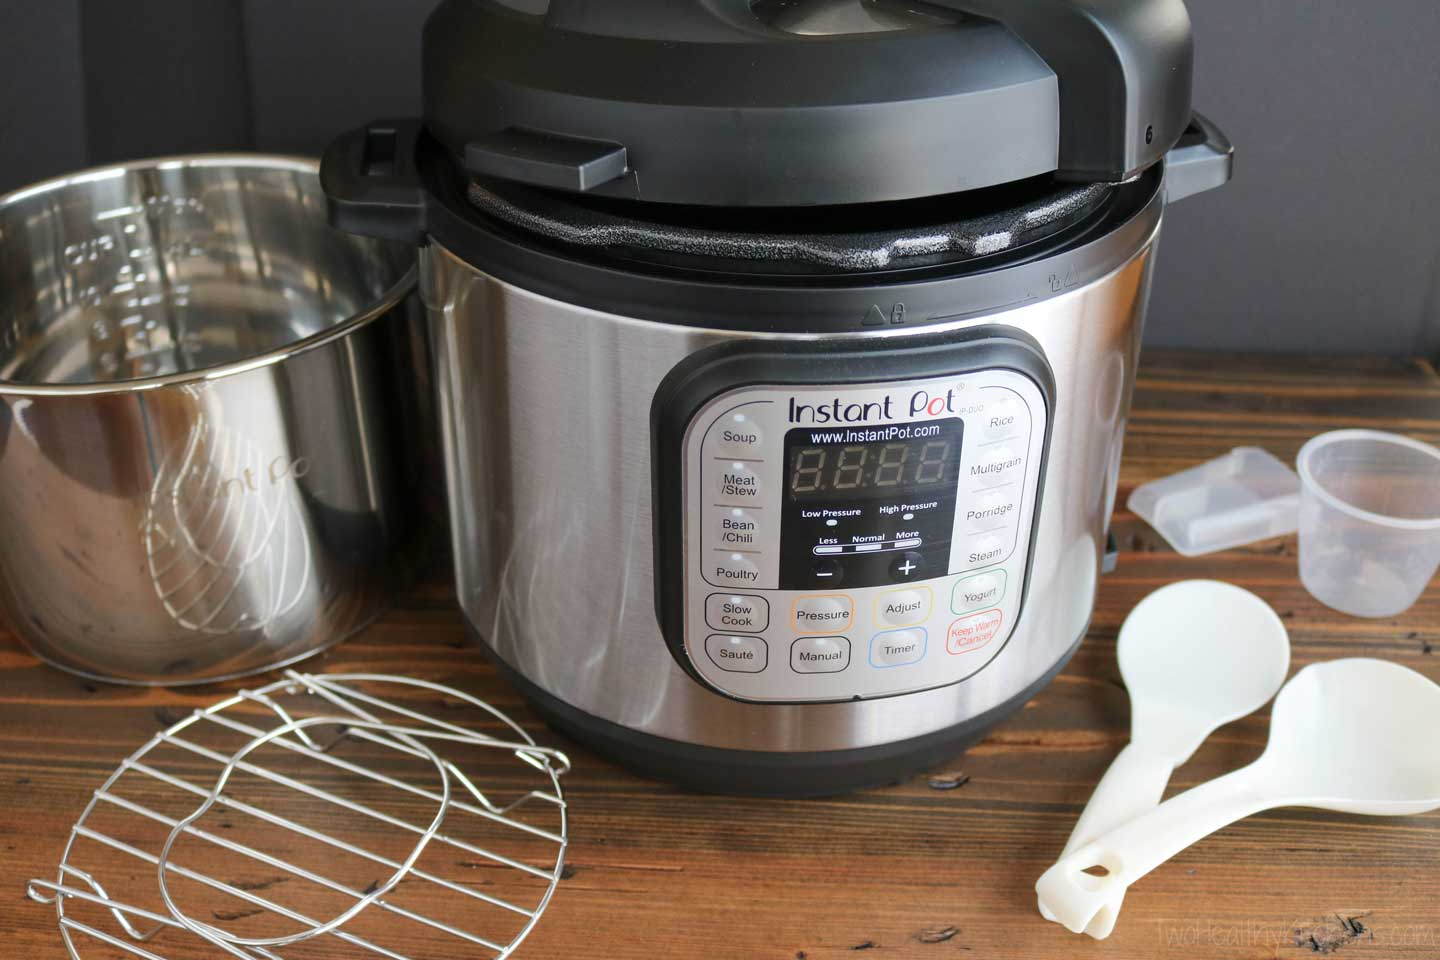 Instant Pot with all the things an Instant Pot comes with - stainless steel inner pot, steaming rack, condensation collector, rice paddle, soup spoon and measuring cup